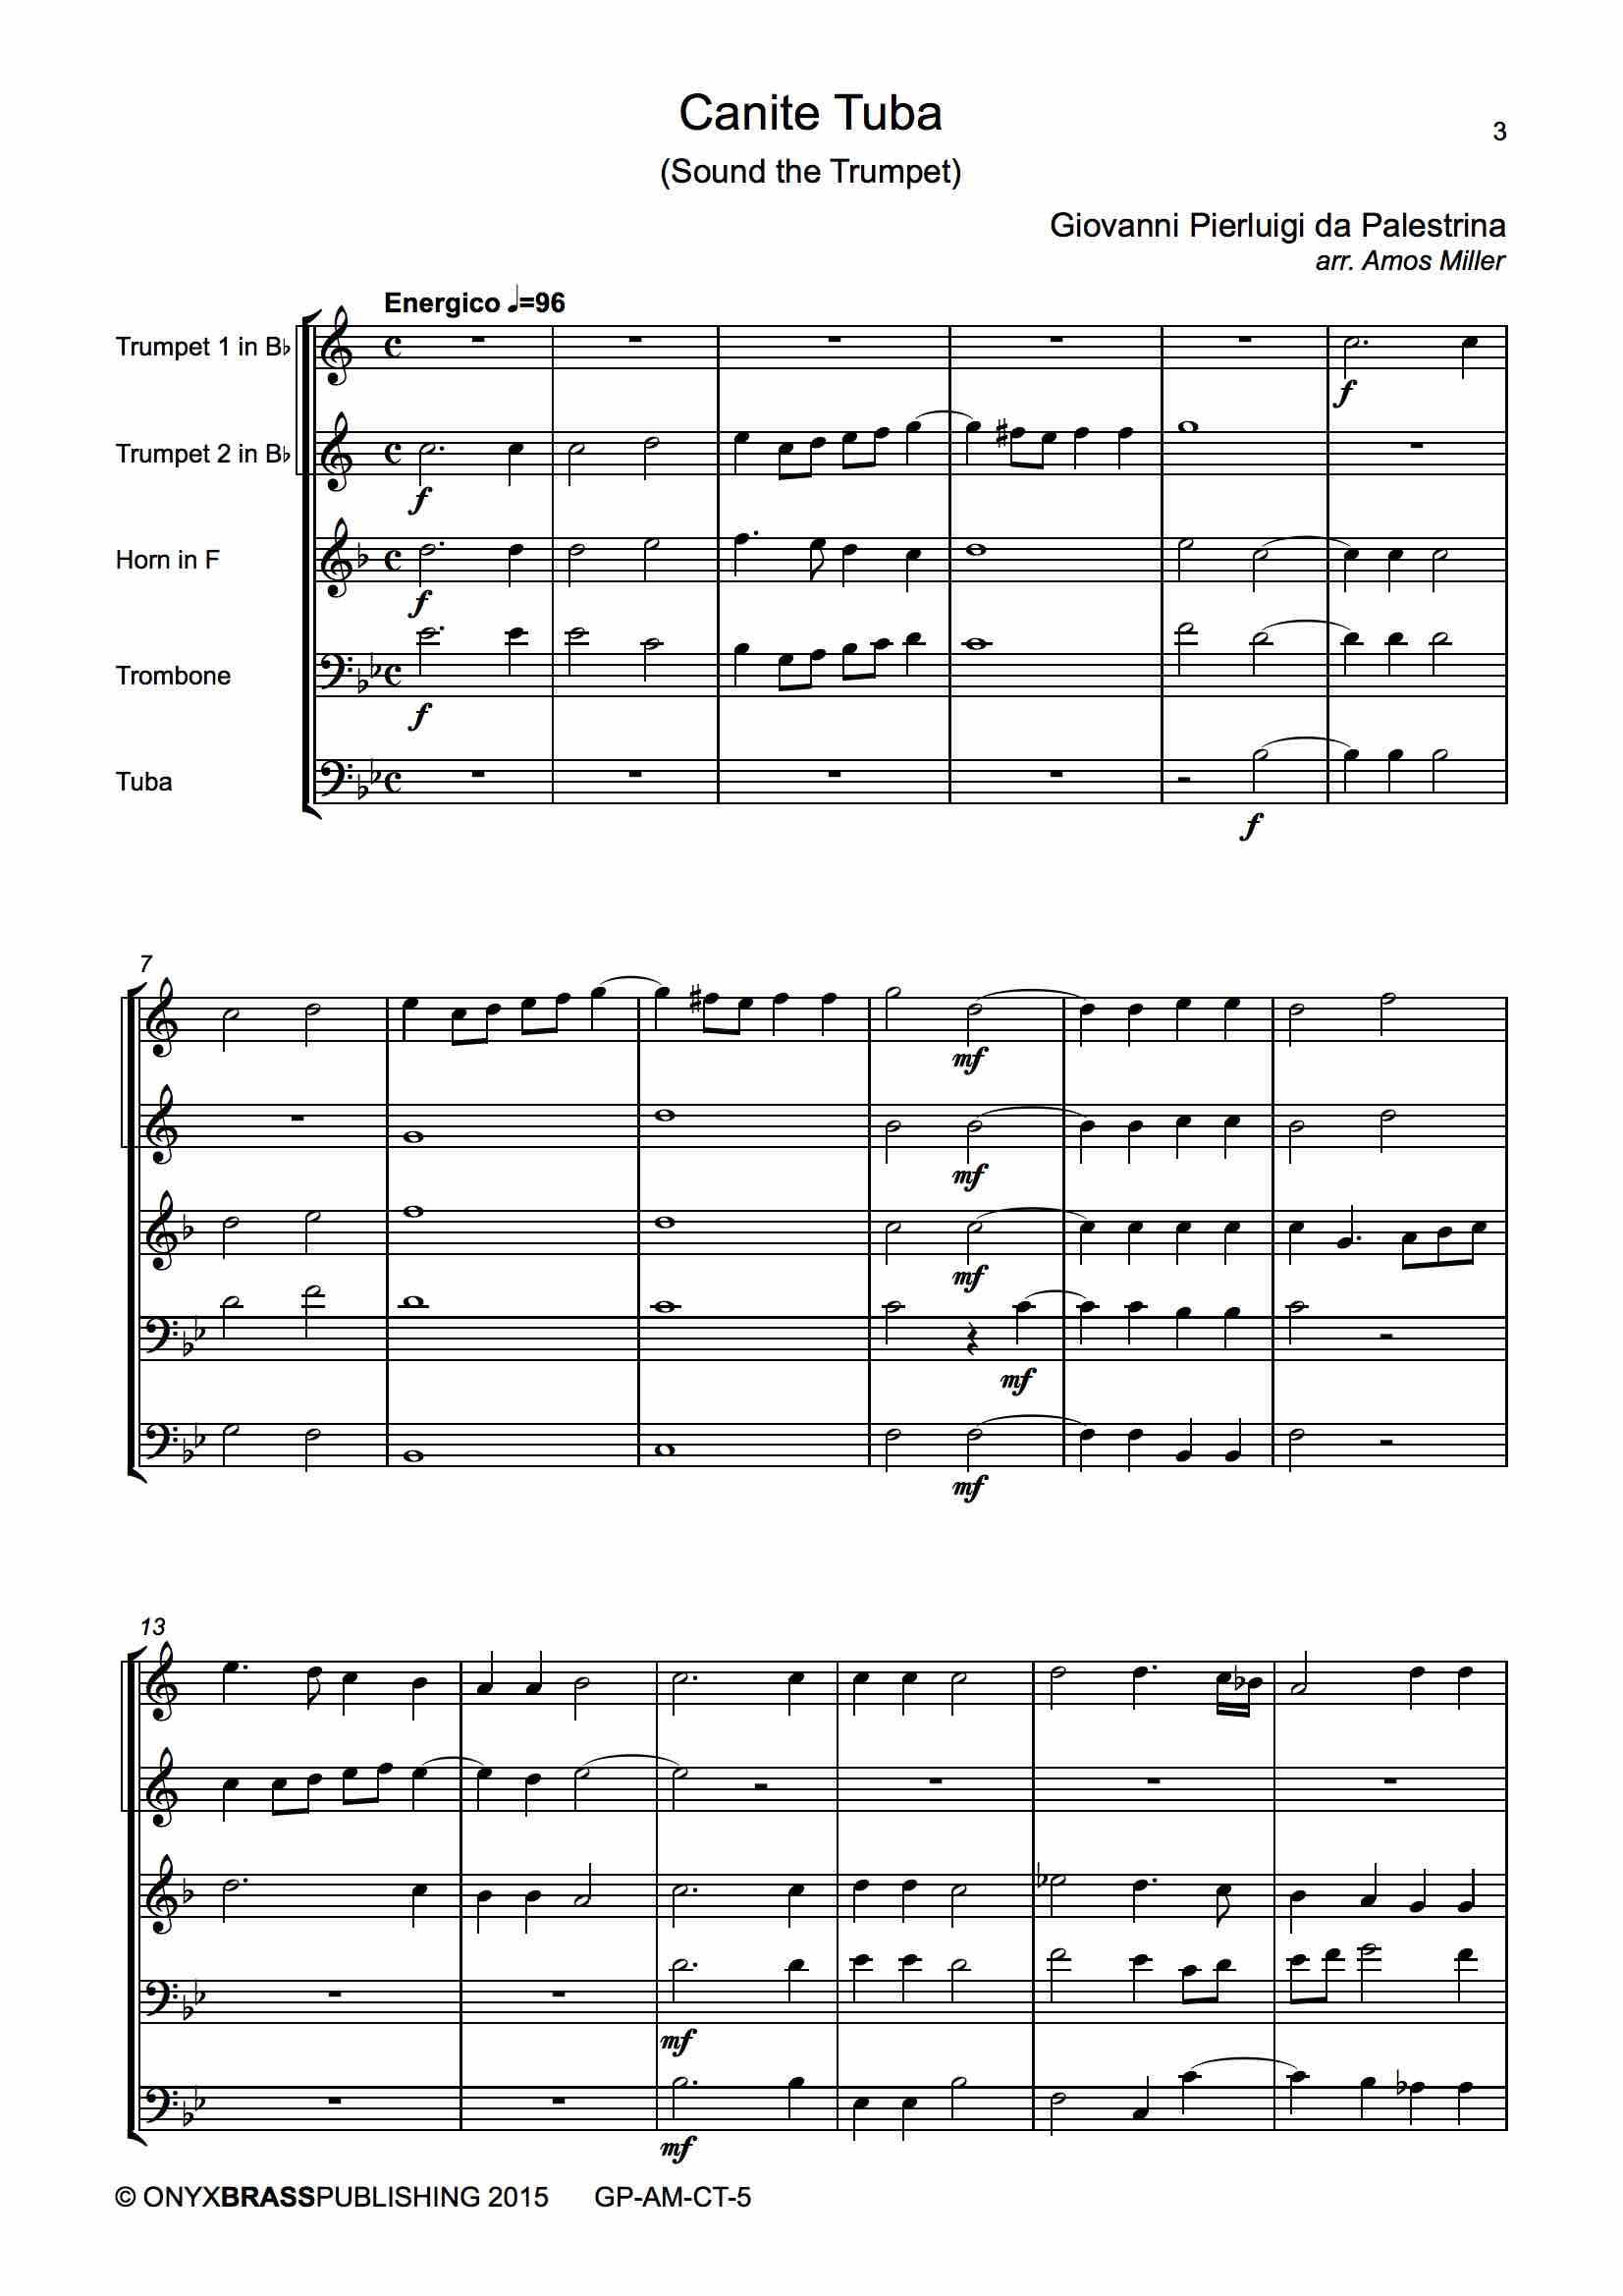 Canite Tuba - example page